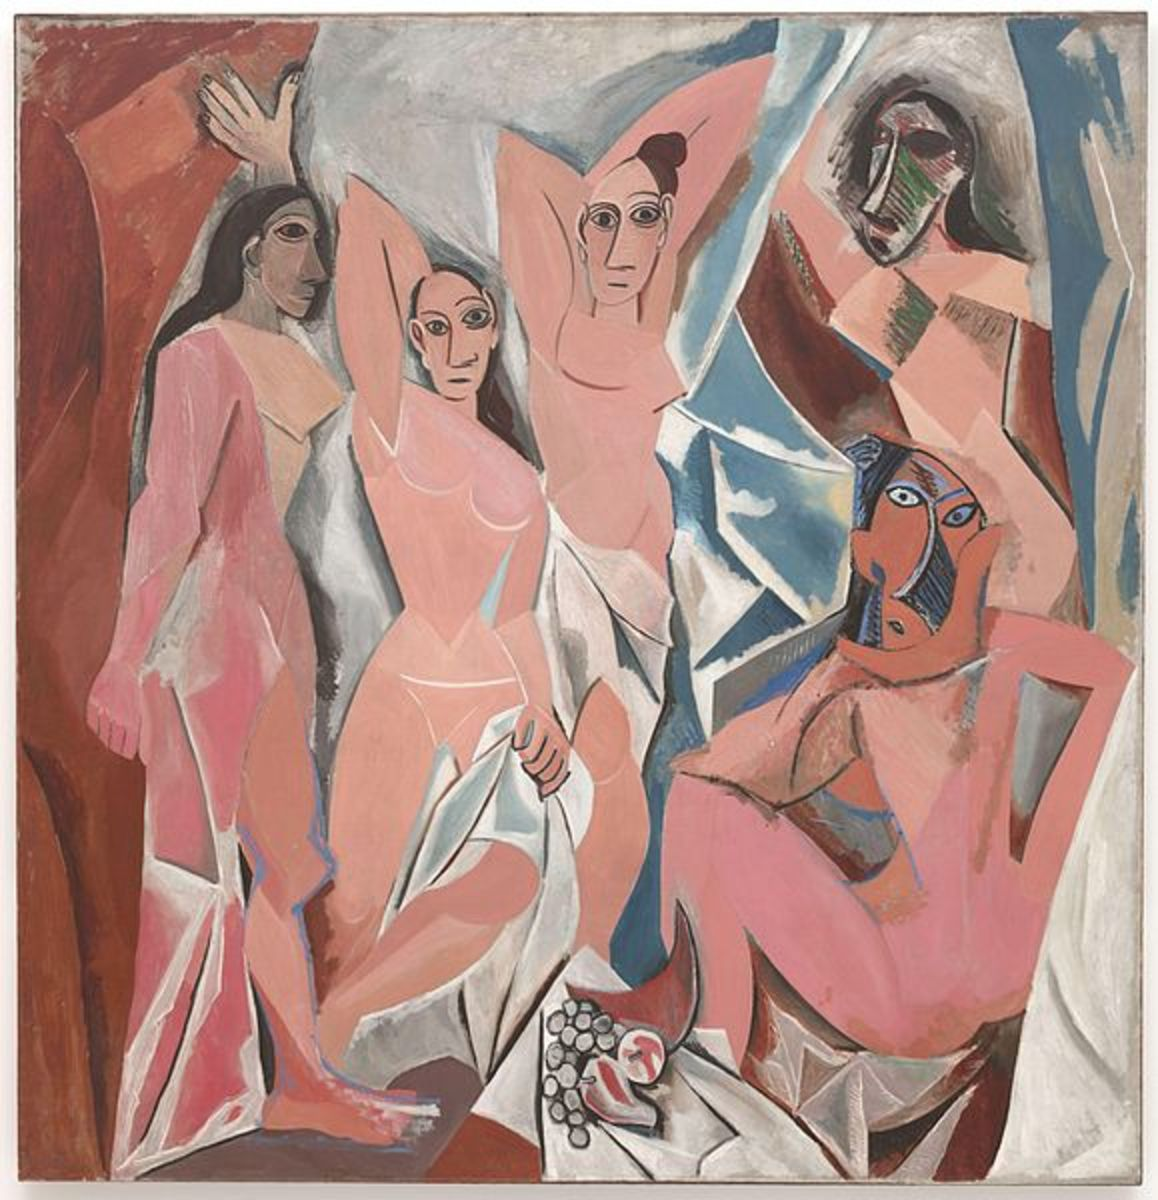 Les Demoiselles d'Avignon / The Young Ladies of Avignon — originally called The Brothel of Avignon (1907)